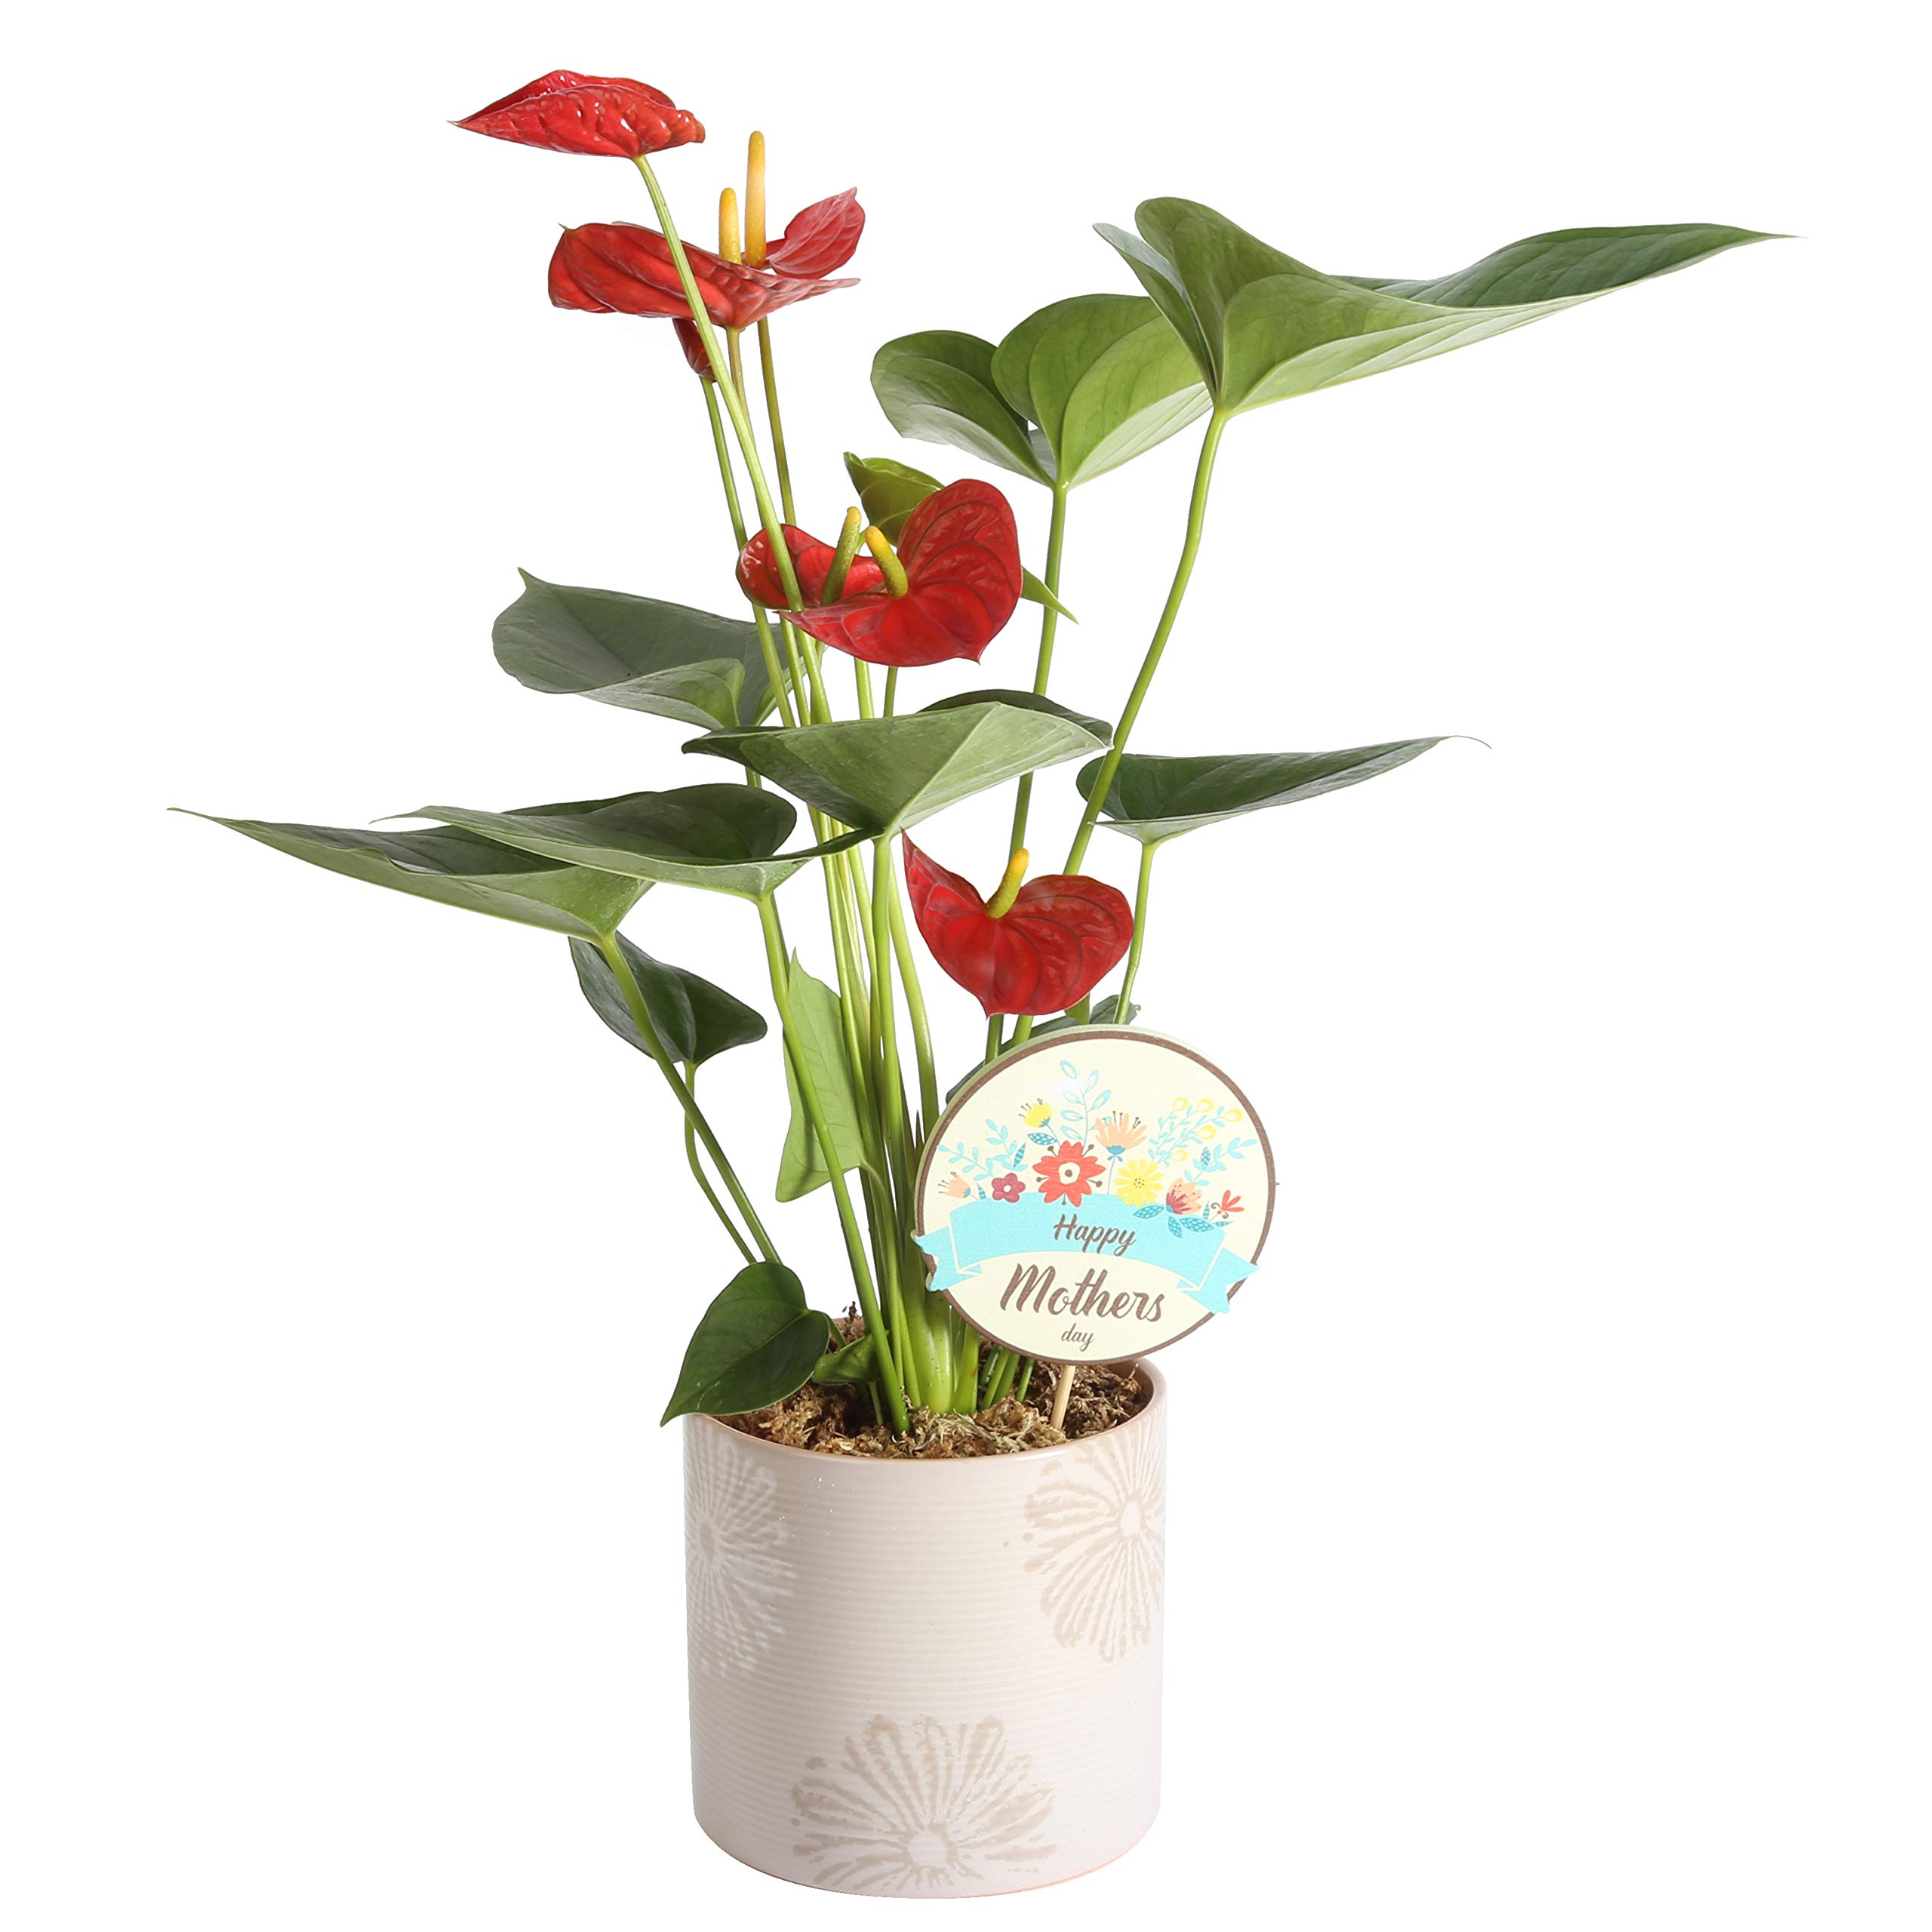 Costa Farms Live Anthurium Indoor Plant in in Premium Ceramic with Mother's Day Pick, 12-Inches Tall, as as Gift